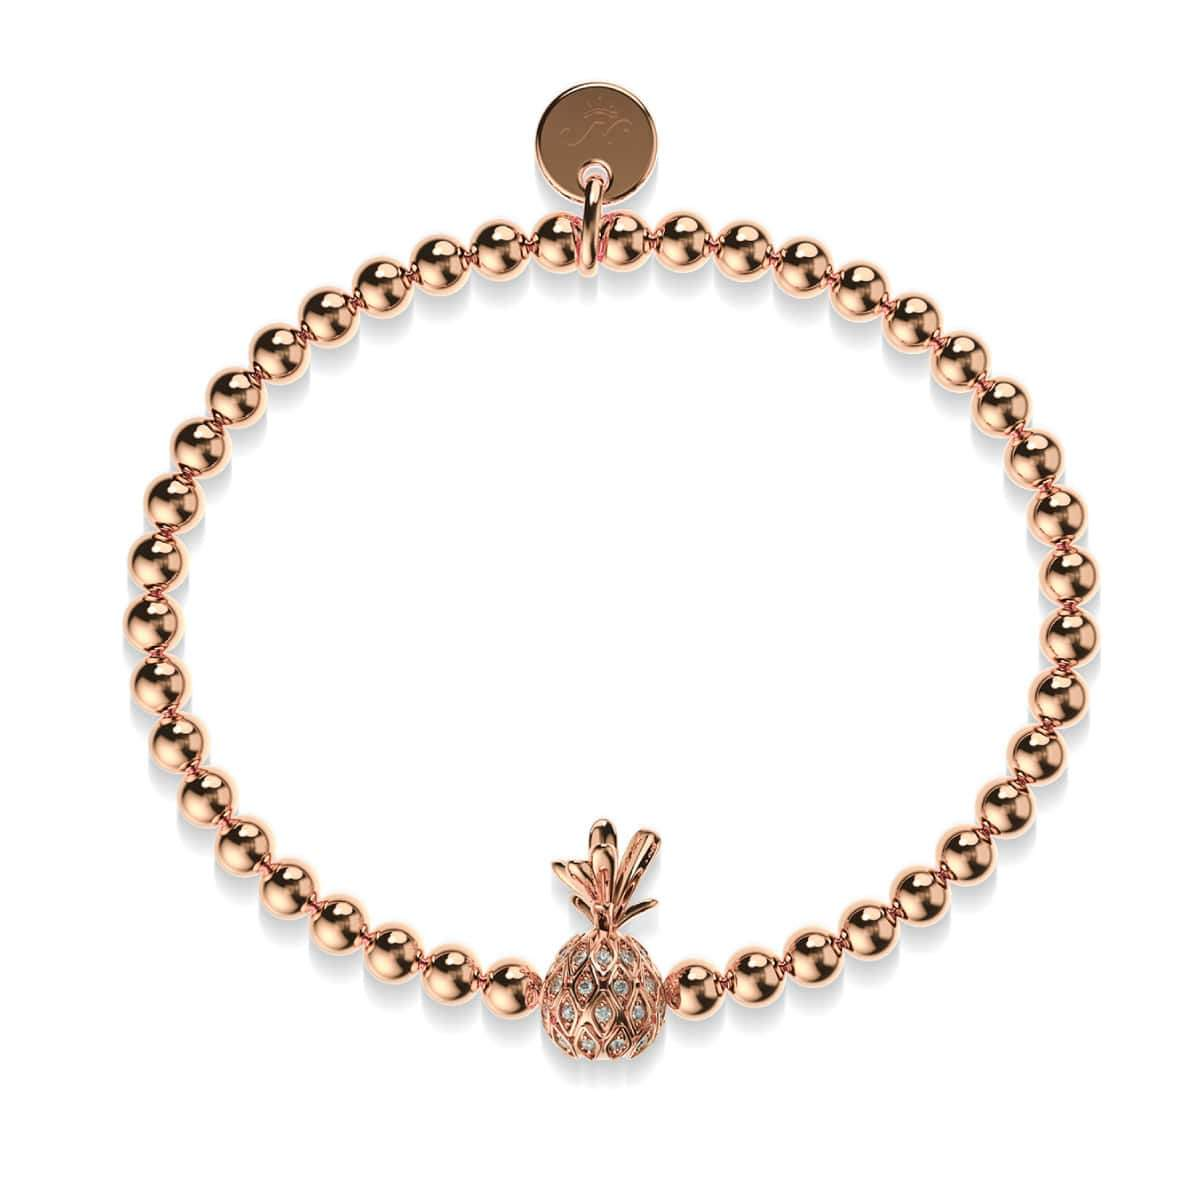 Piña Colada | 18k Rose Gold | Crystal Pineapple Bracelet